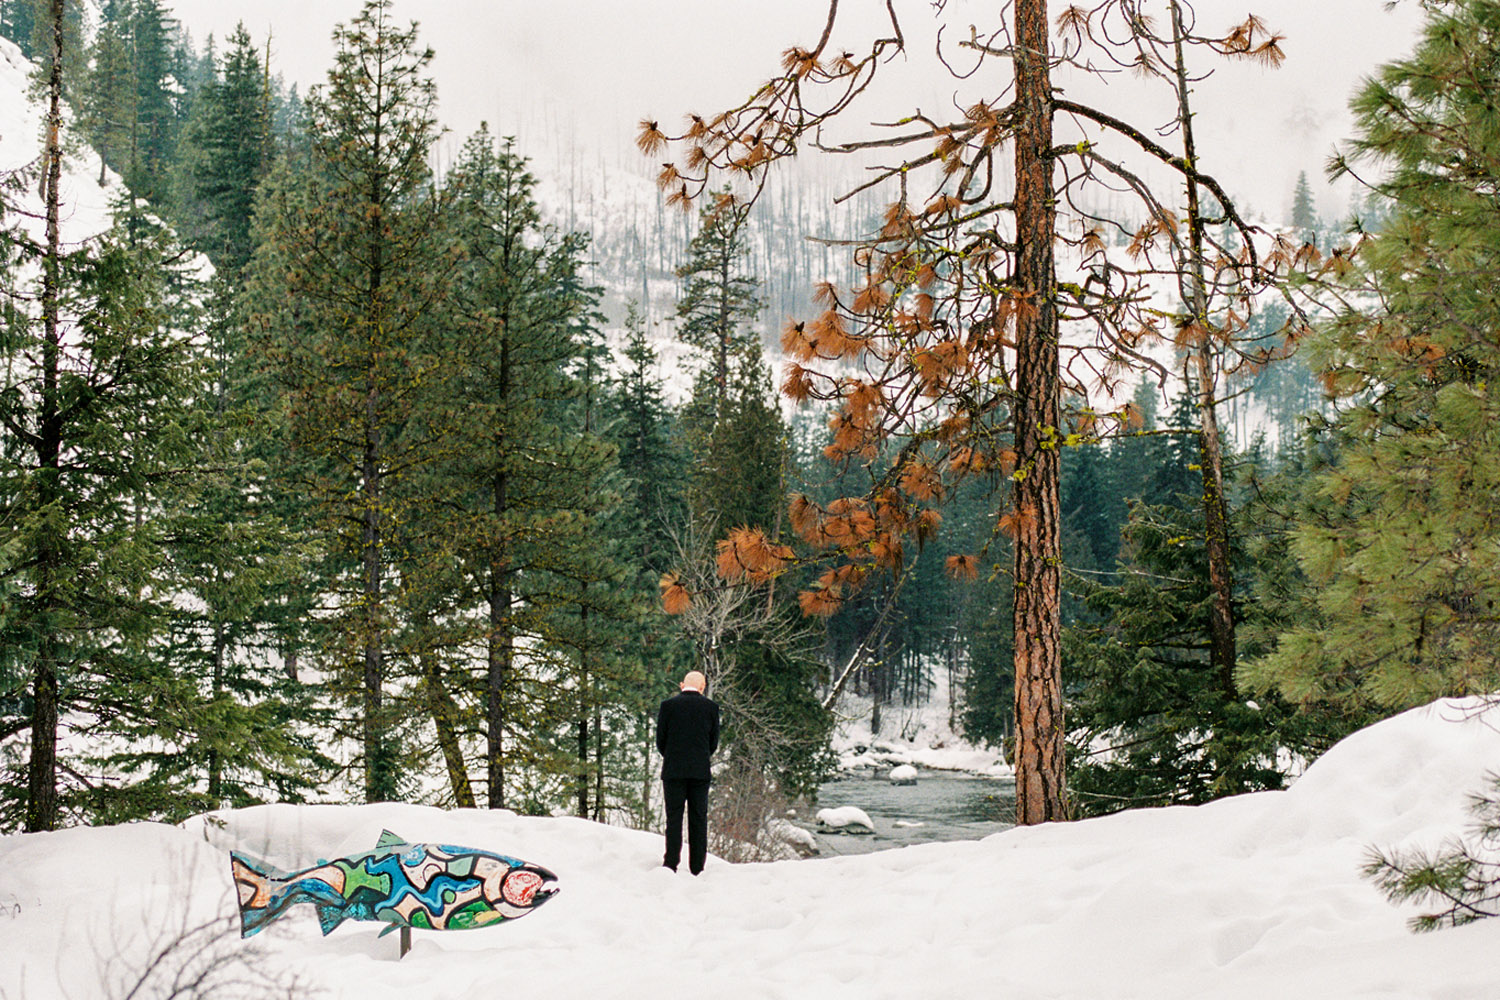 Sleeping Lady Mountain Resort in Leavenworth Winter wedding photography by Icicle Creek